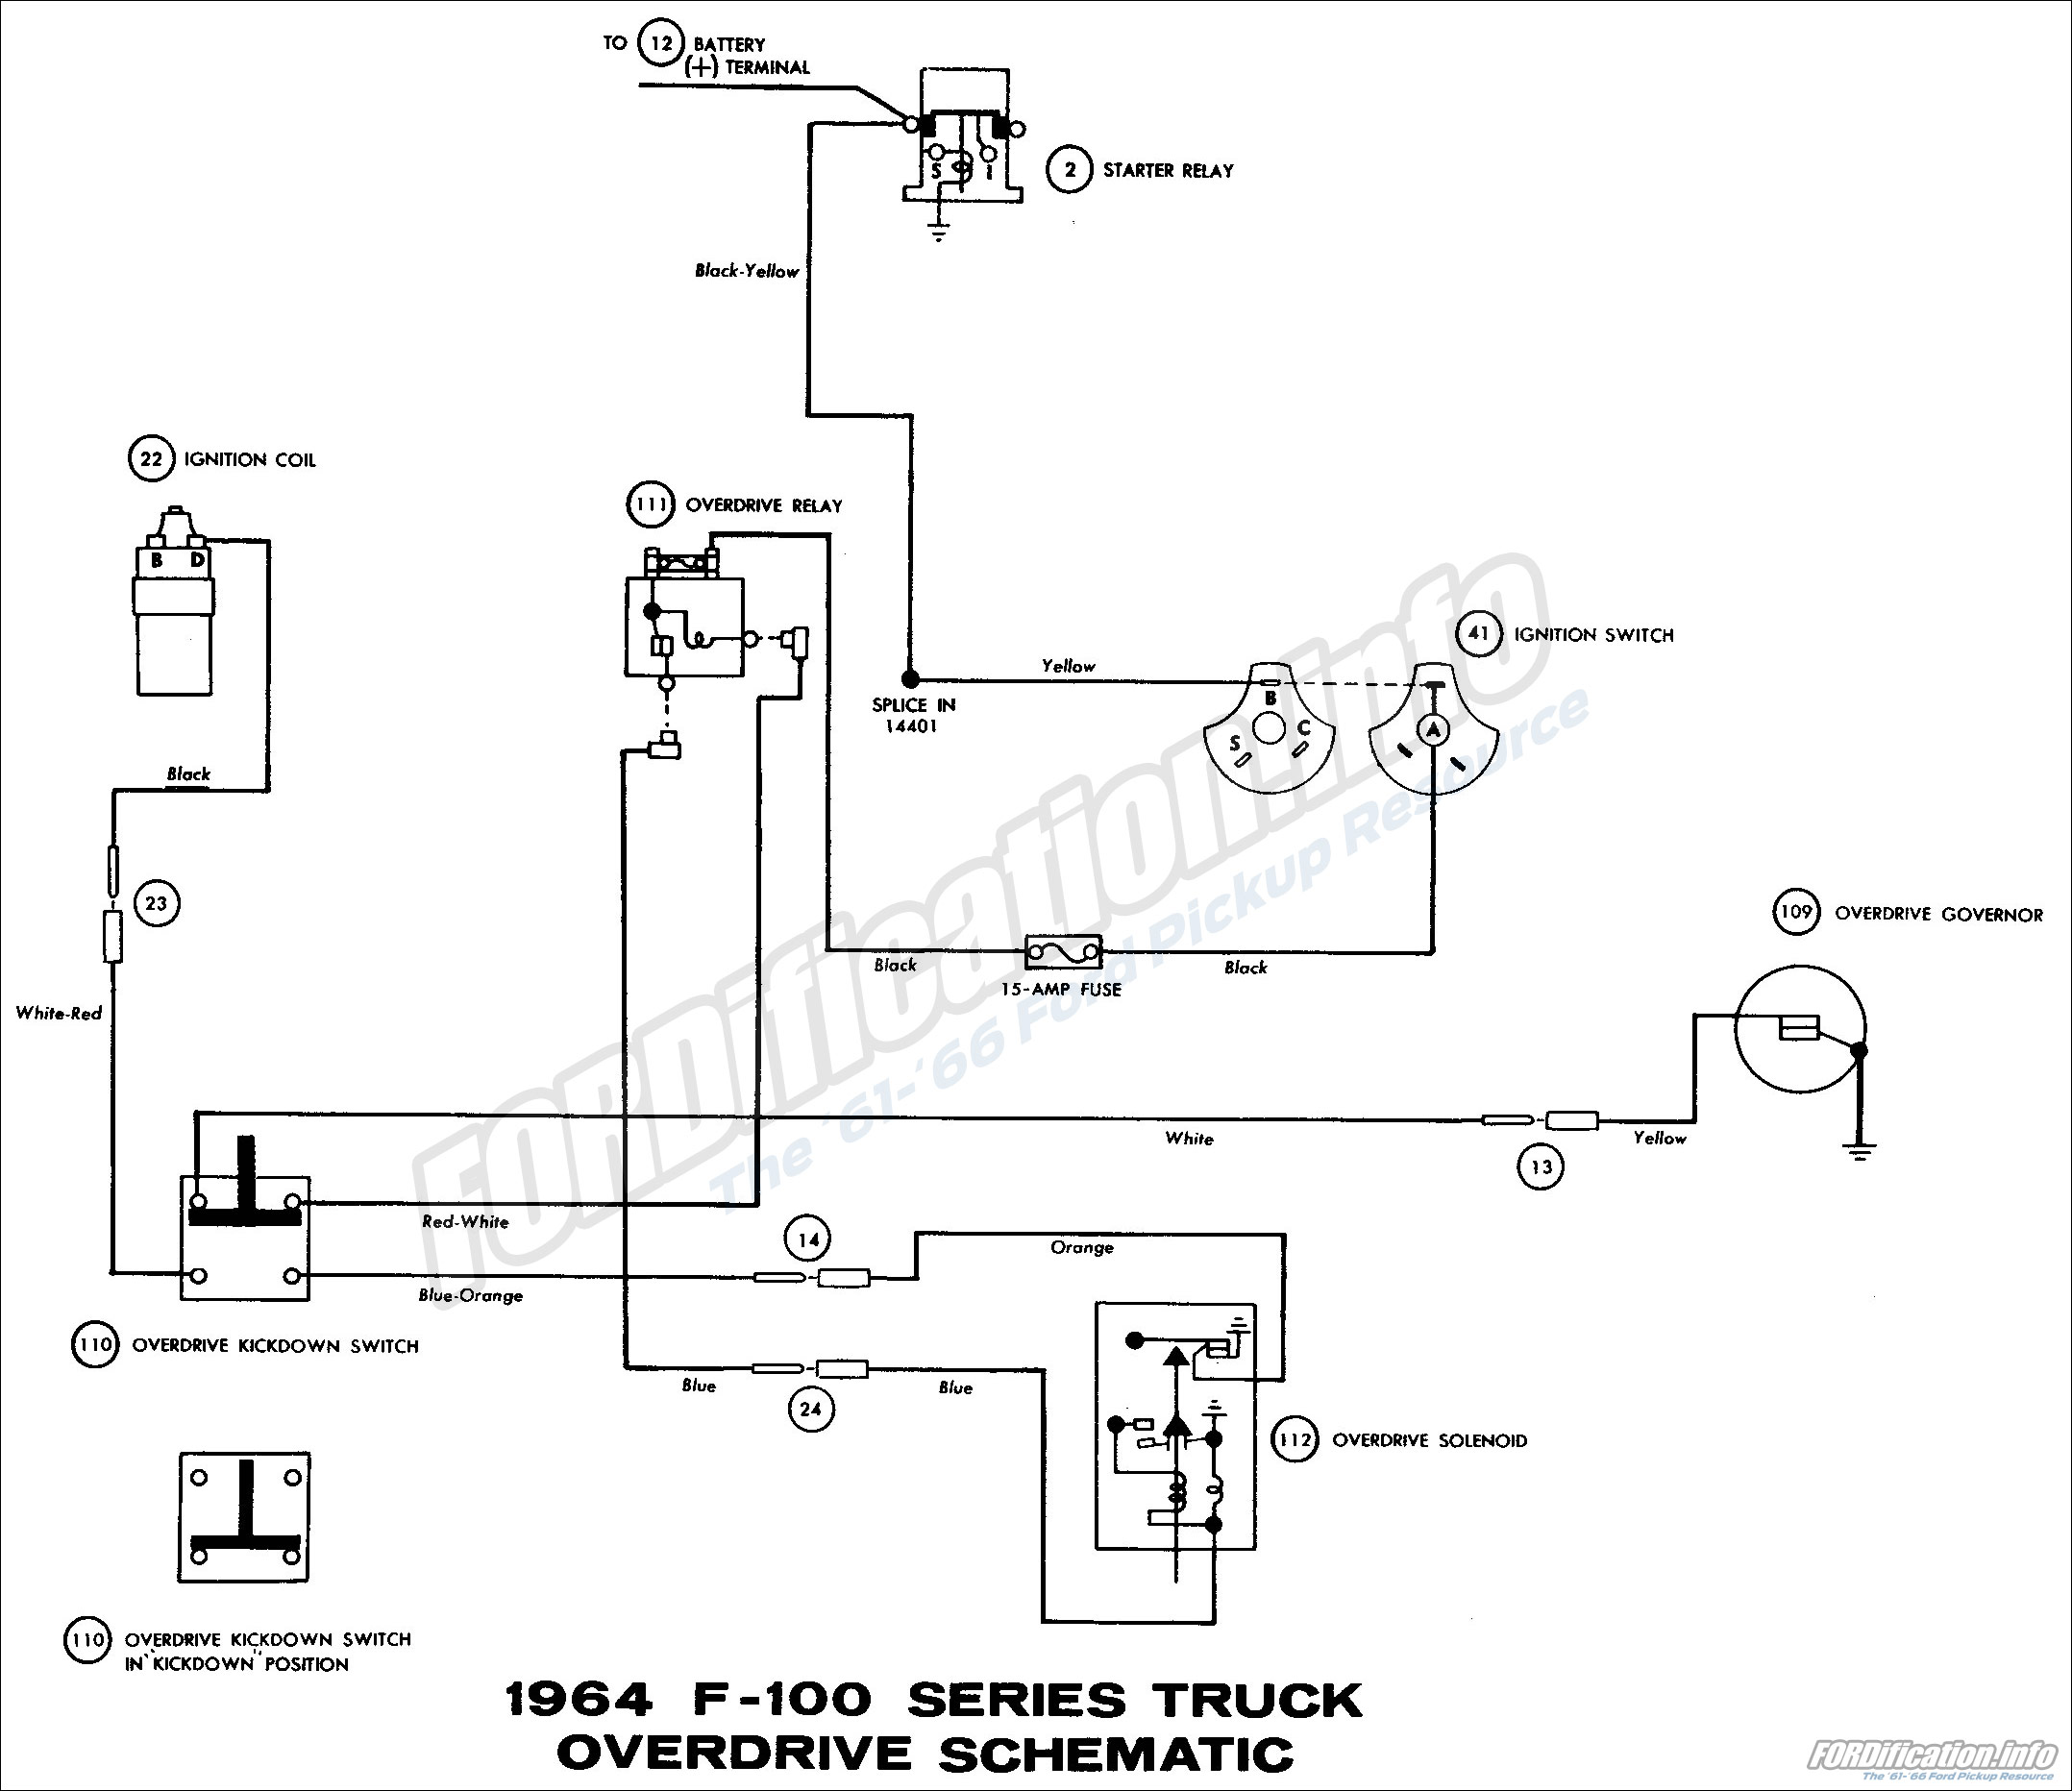 1964_12 64 f100 wiring diagrams on wiring diagram